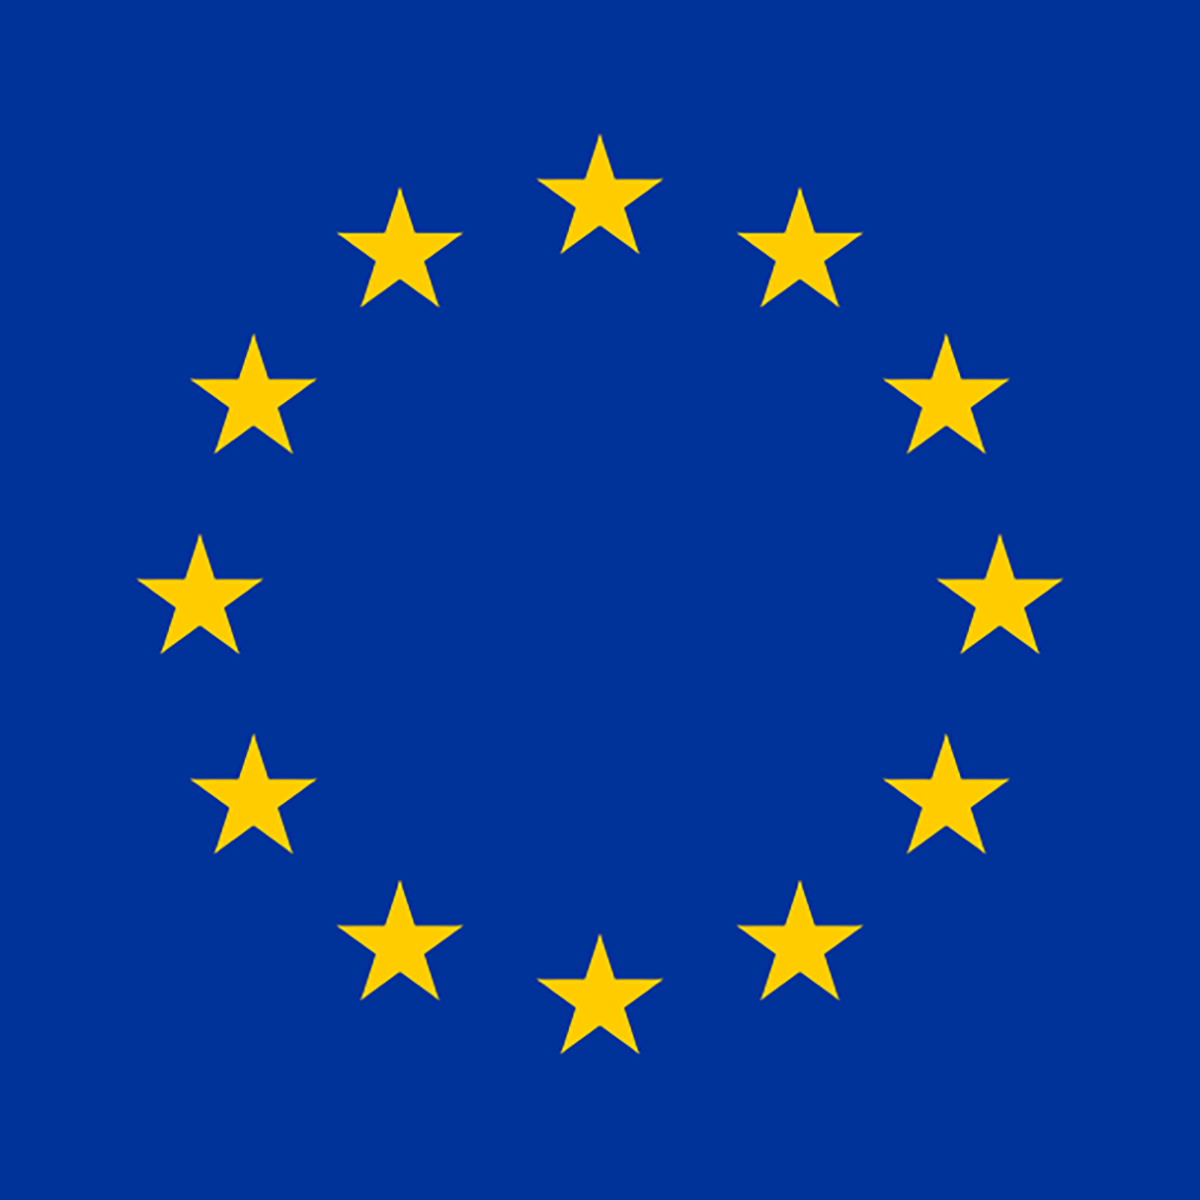 Europe Filter - For Facebook profile pictures, Twitter